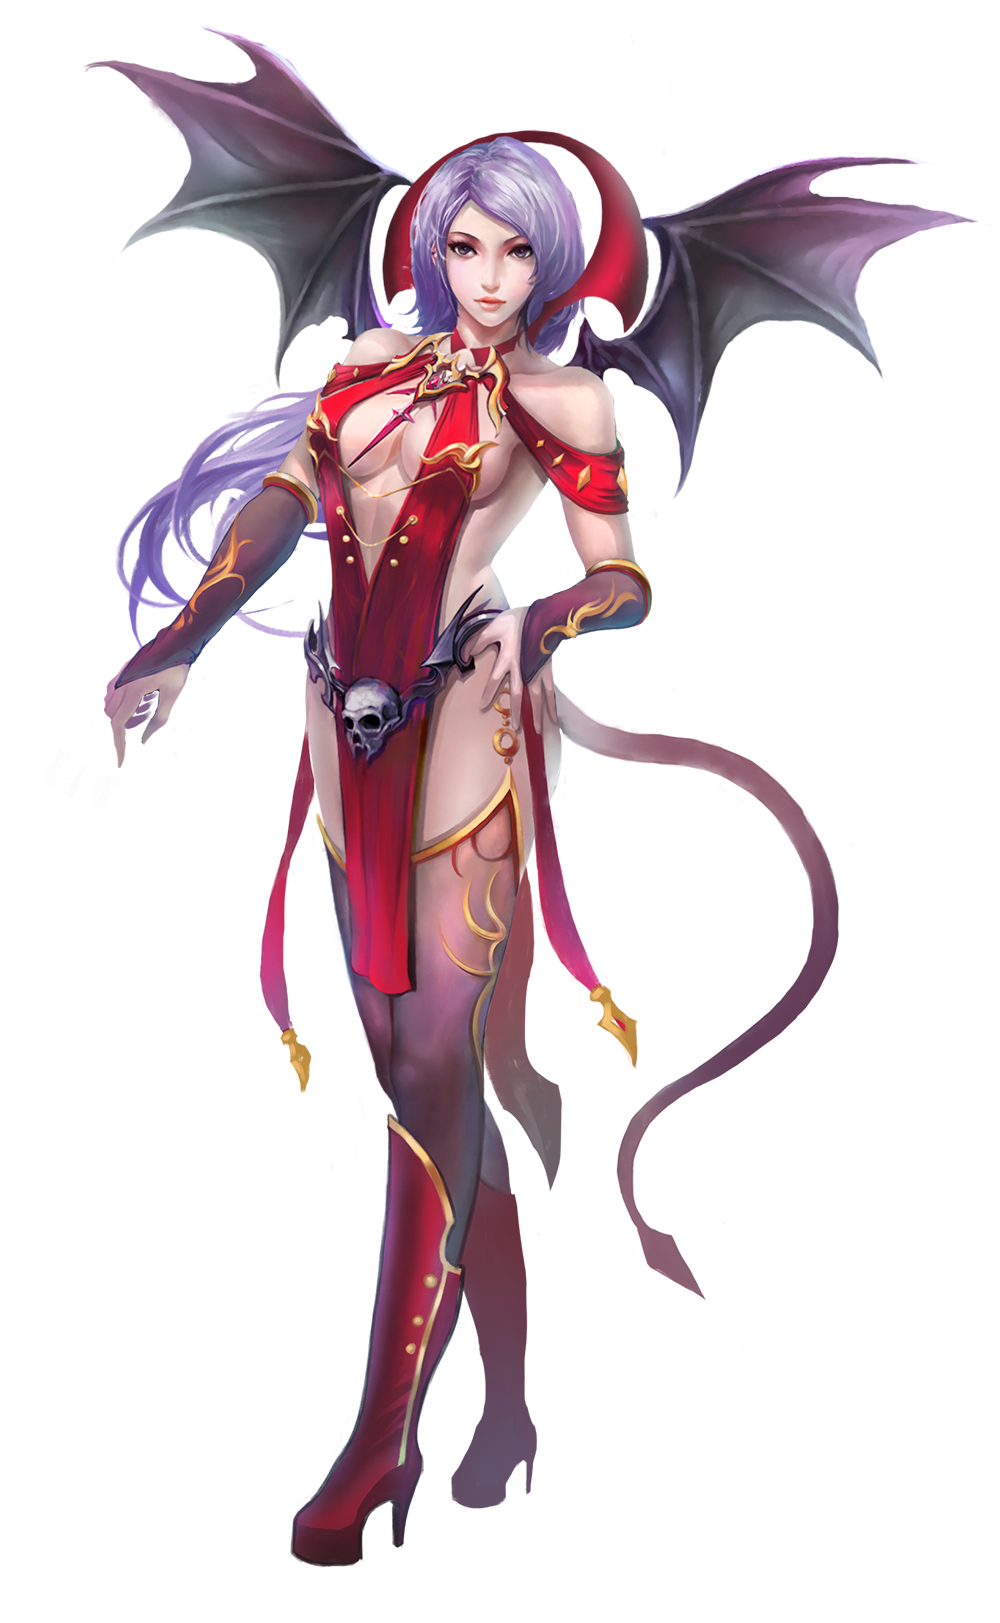 League of angels witch png. Massively multiplayer online role